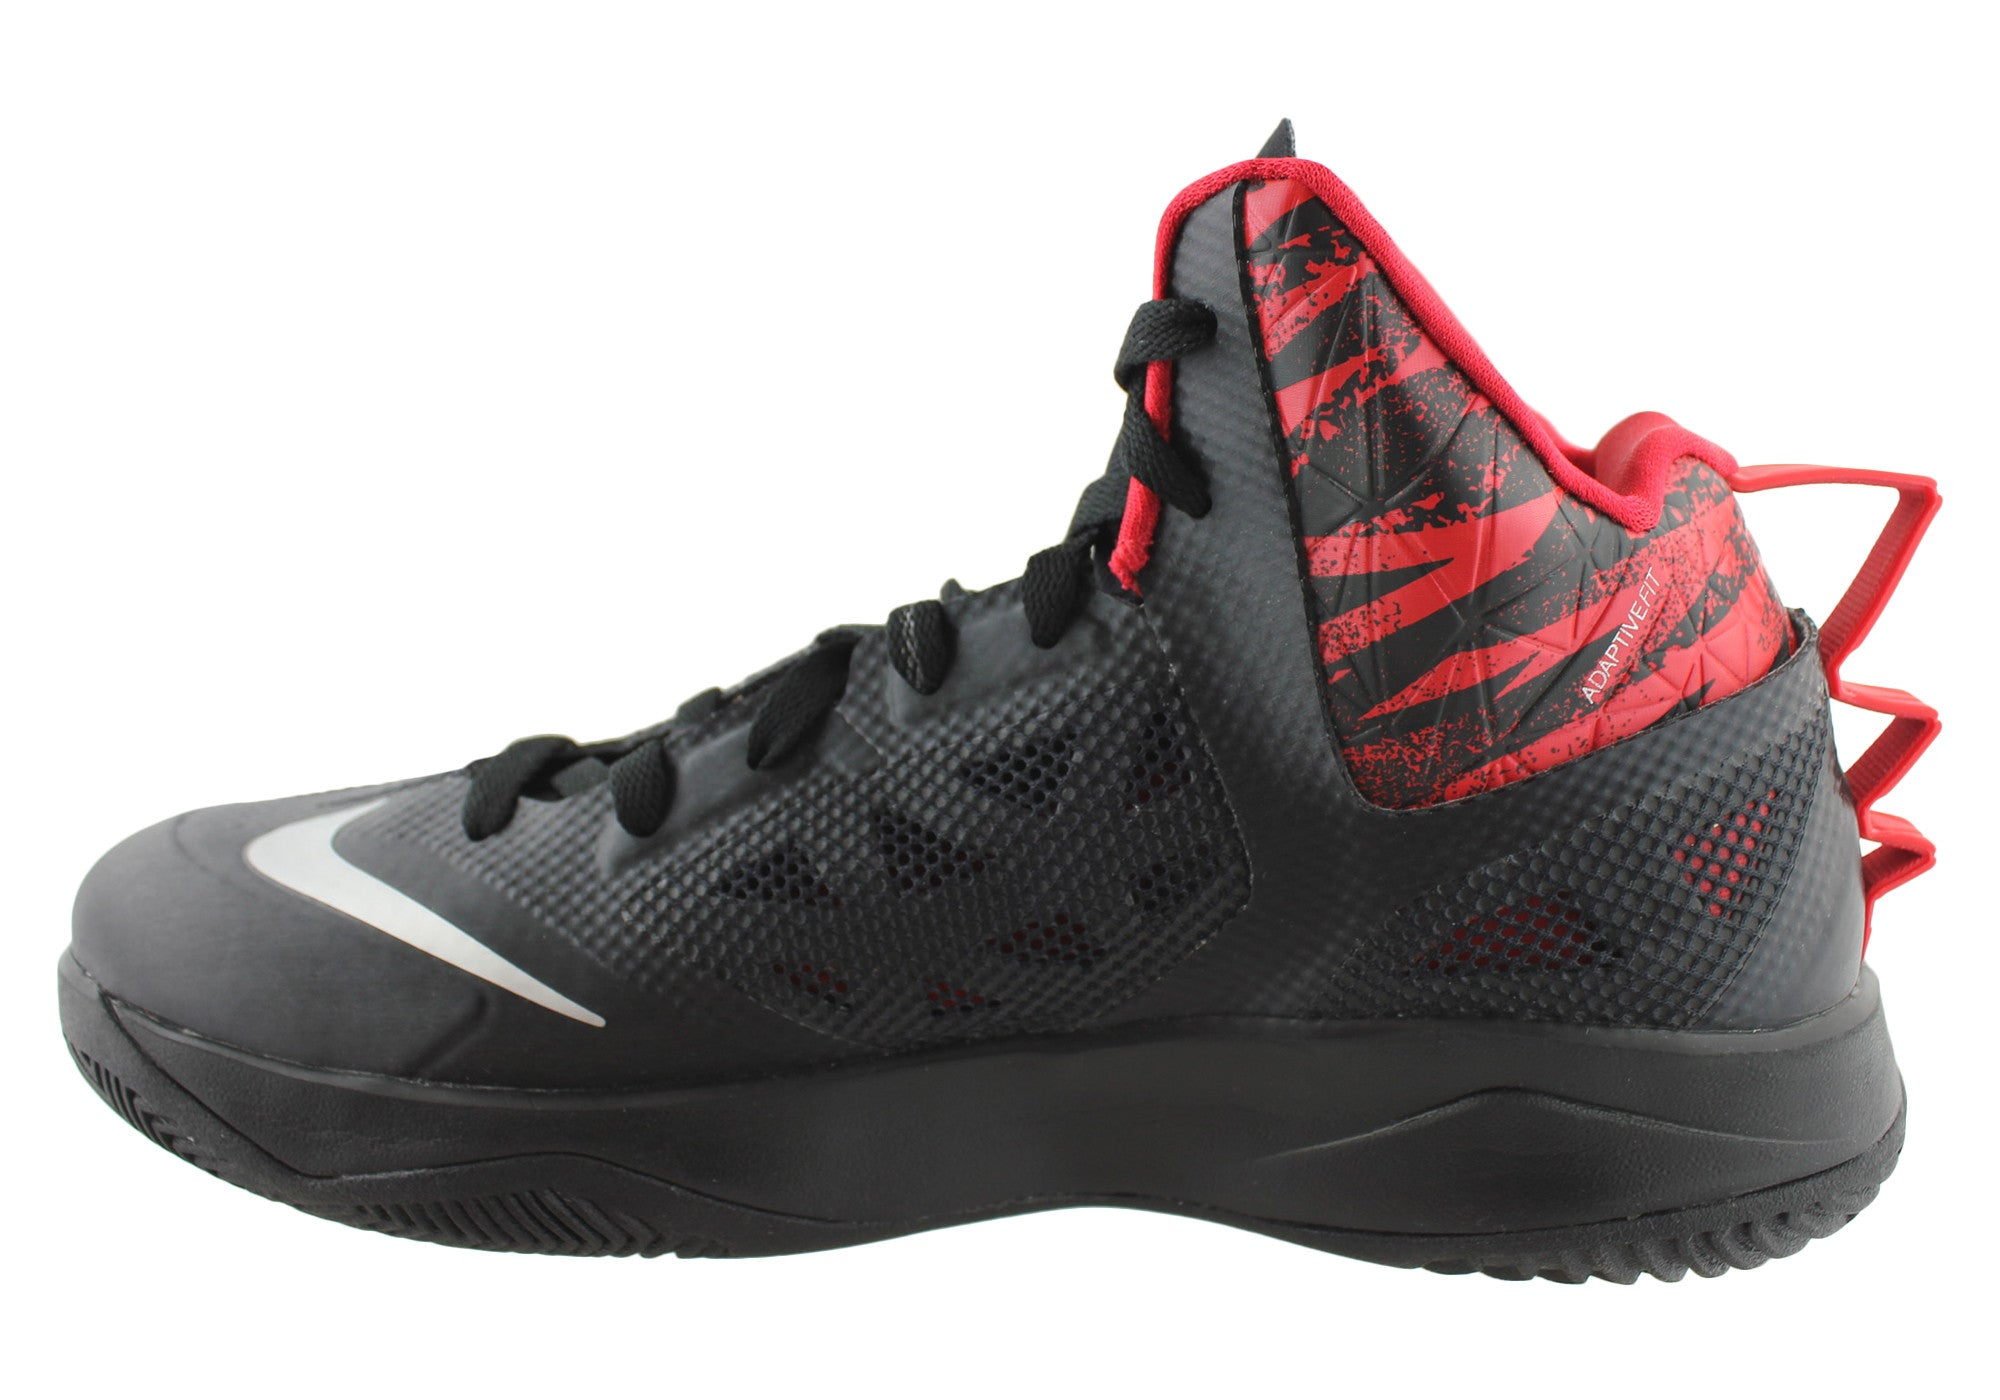 Nike Zoom Hyperfuse 2013 Mens High Tops/Shoes | Brand ...